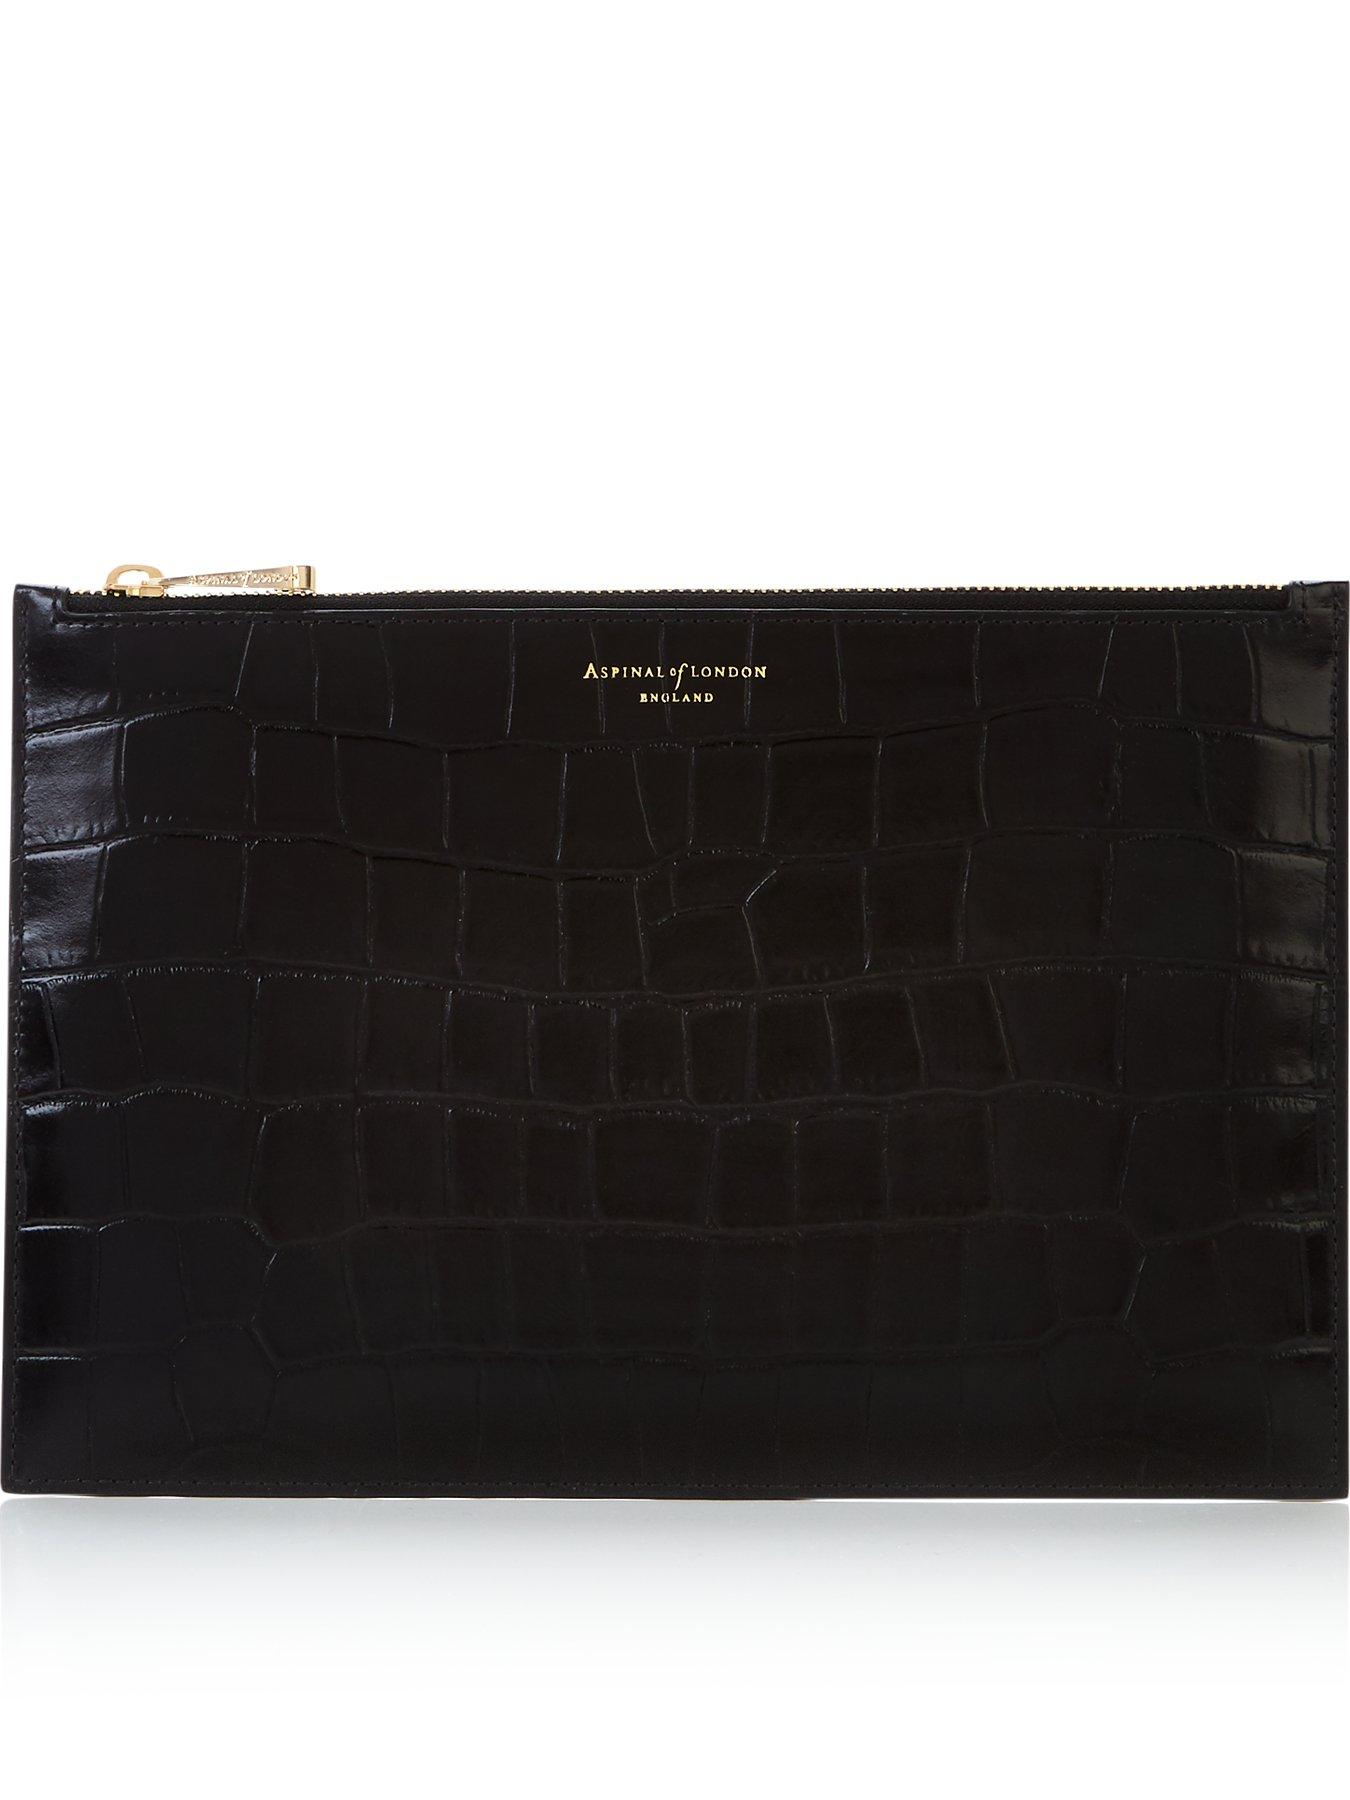 New Aspinal Of London Essential Pouch Pink Leather Wallet Purse Only £45,90!!!